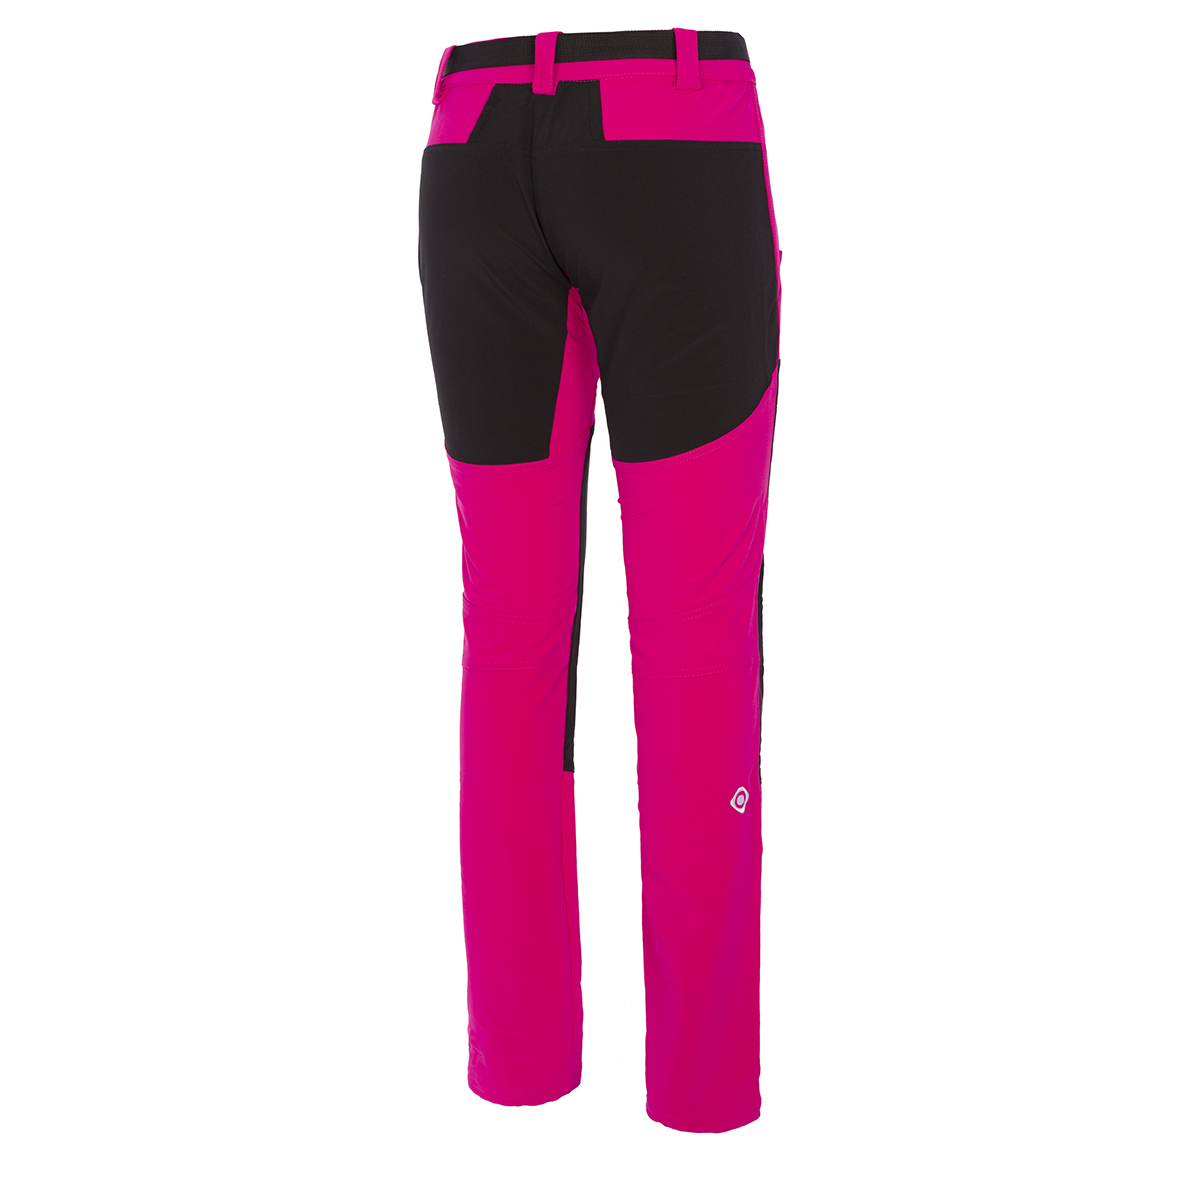 WOMAN'S DOROTA STRETCH PANT FUXIA